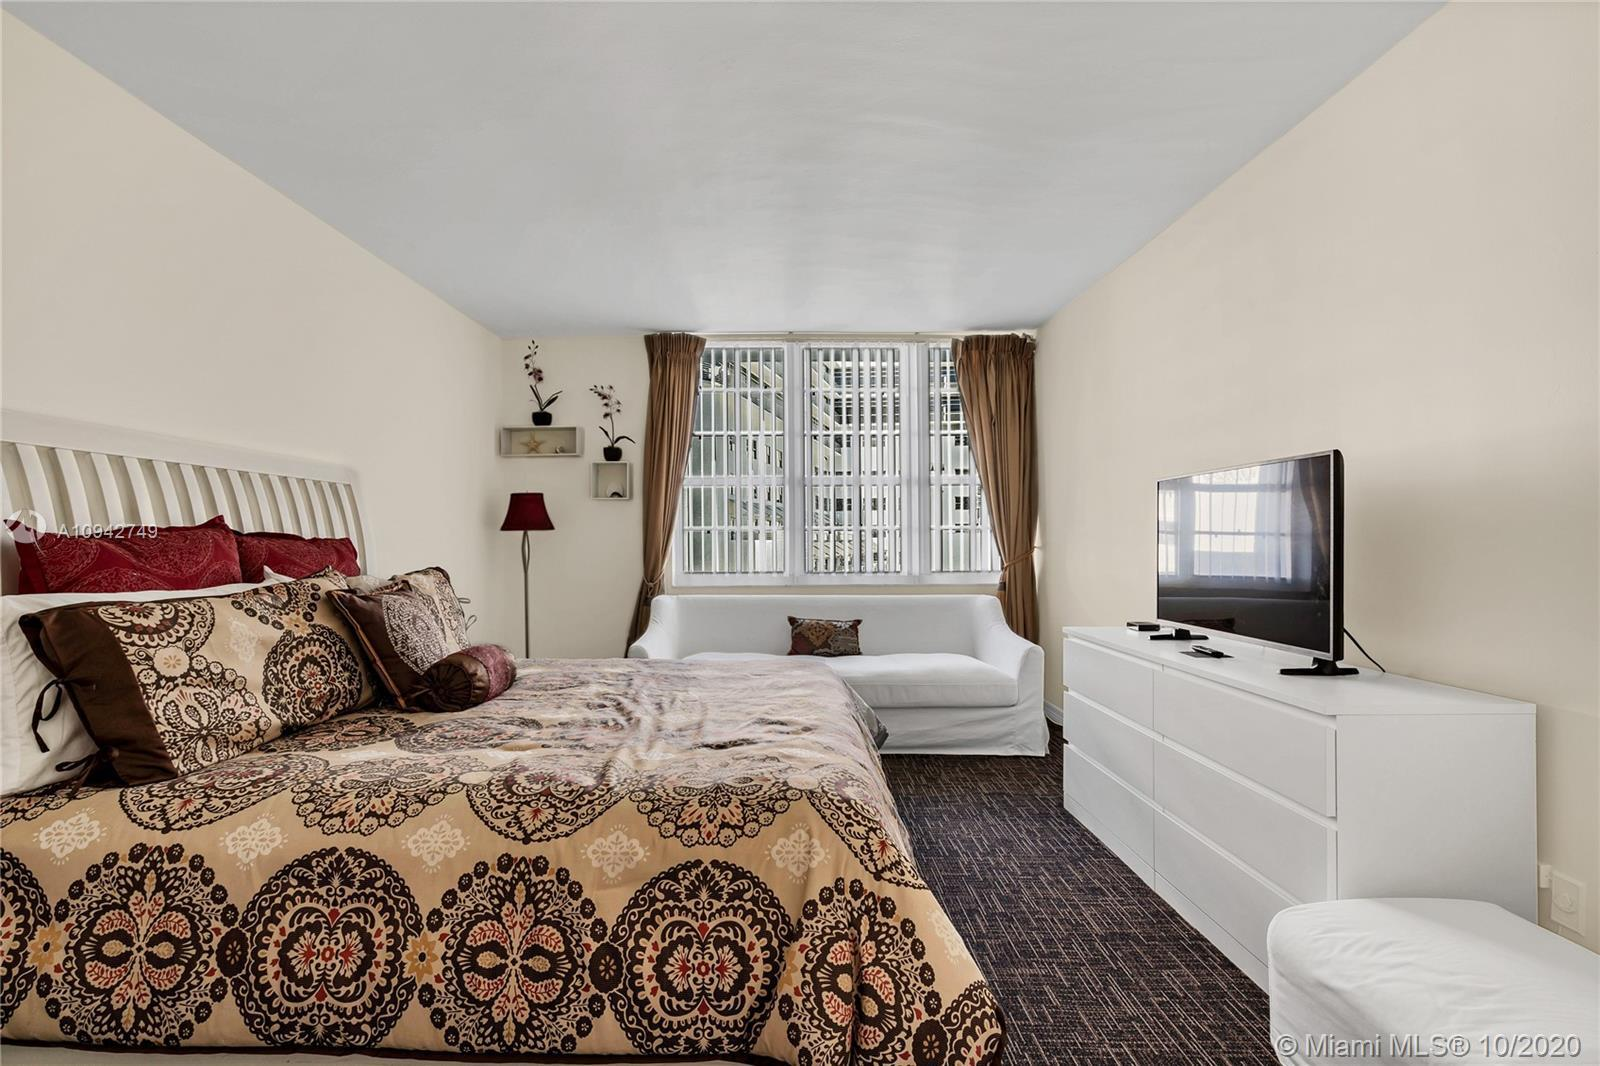 Best price in building for ocean/city view unit with balcony!